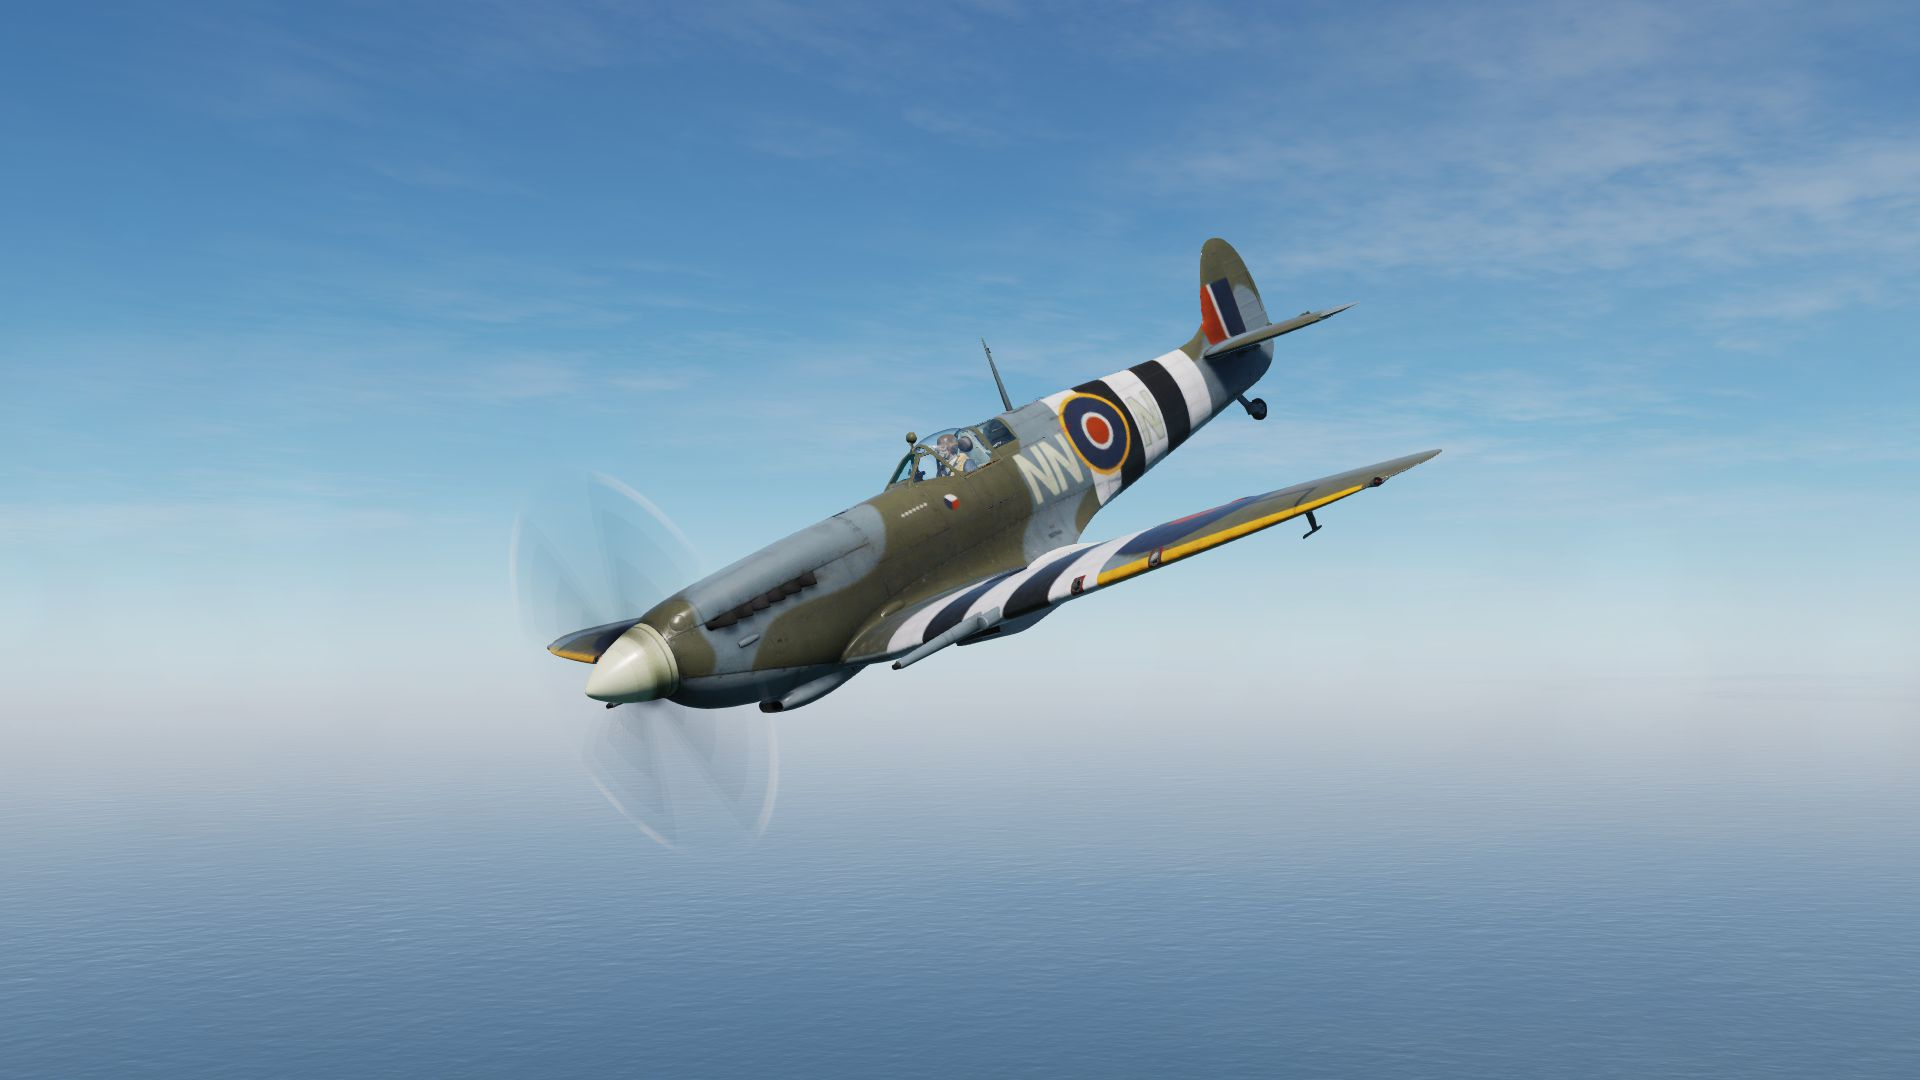 Spitfire Mk.IX, MJ291, flown by Czech ace Otto Smik, 310. Sq. spring 1944